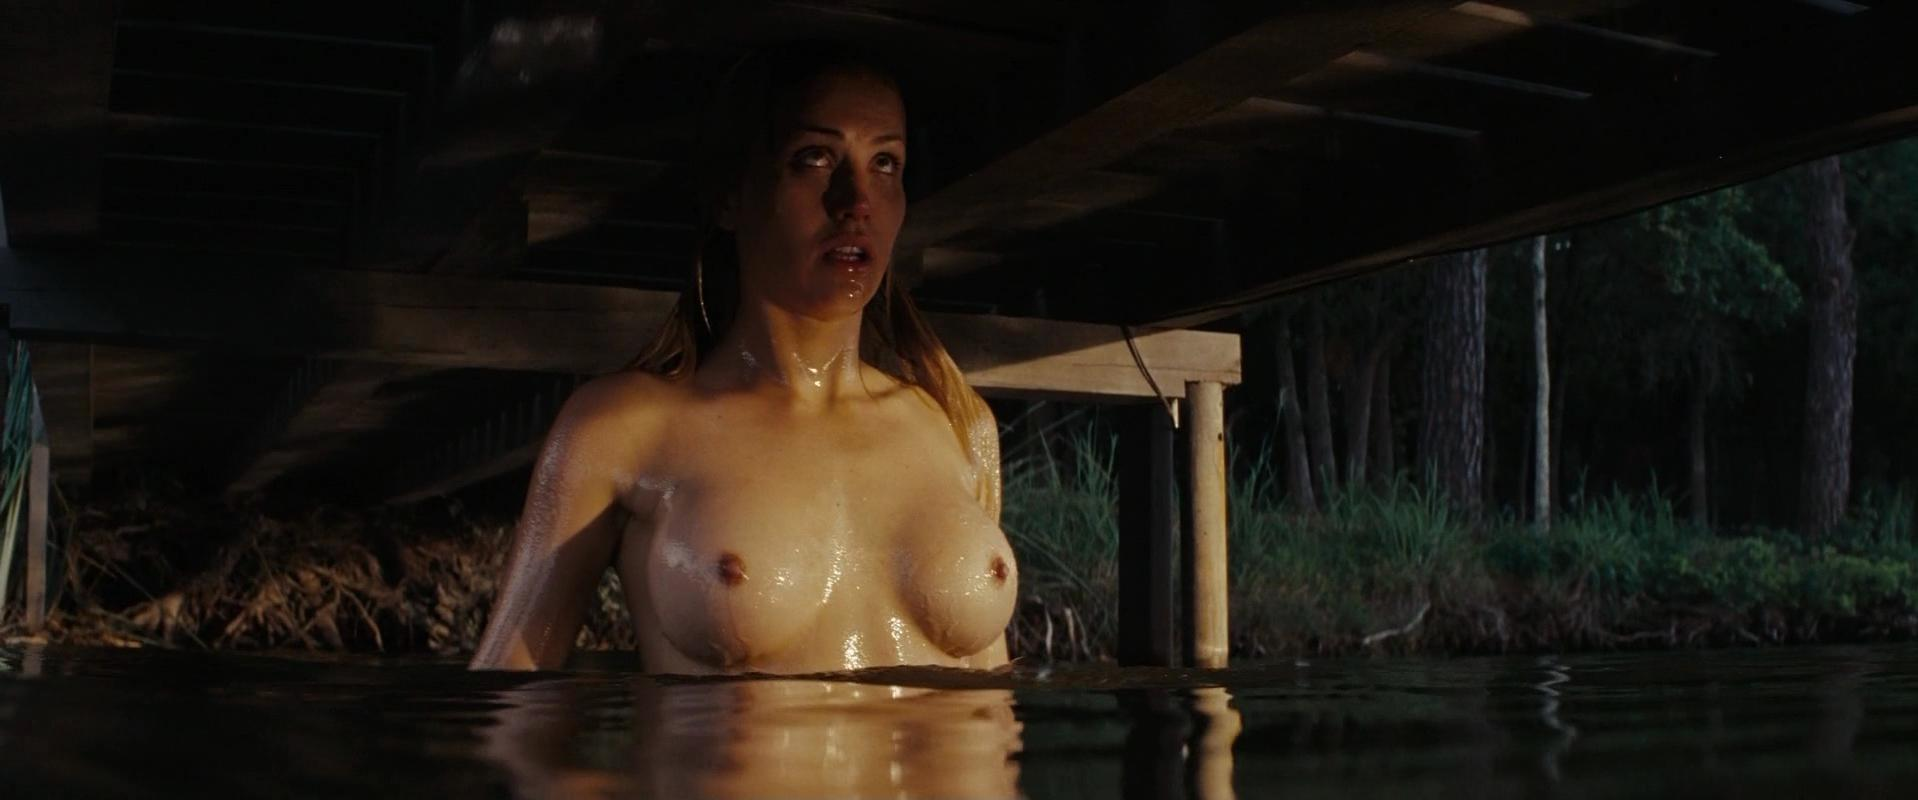 Willa Ford nude - Friday the 13th (2009)